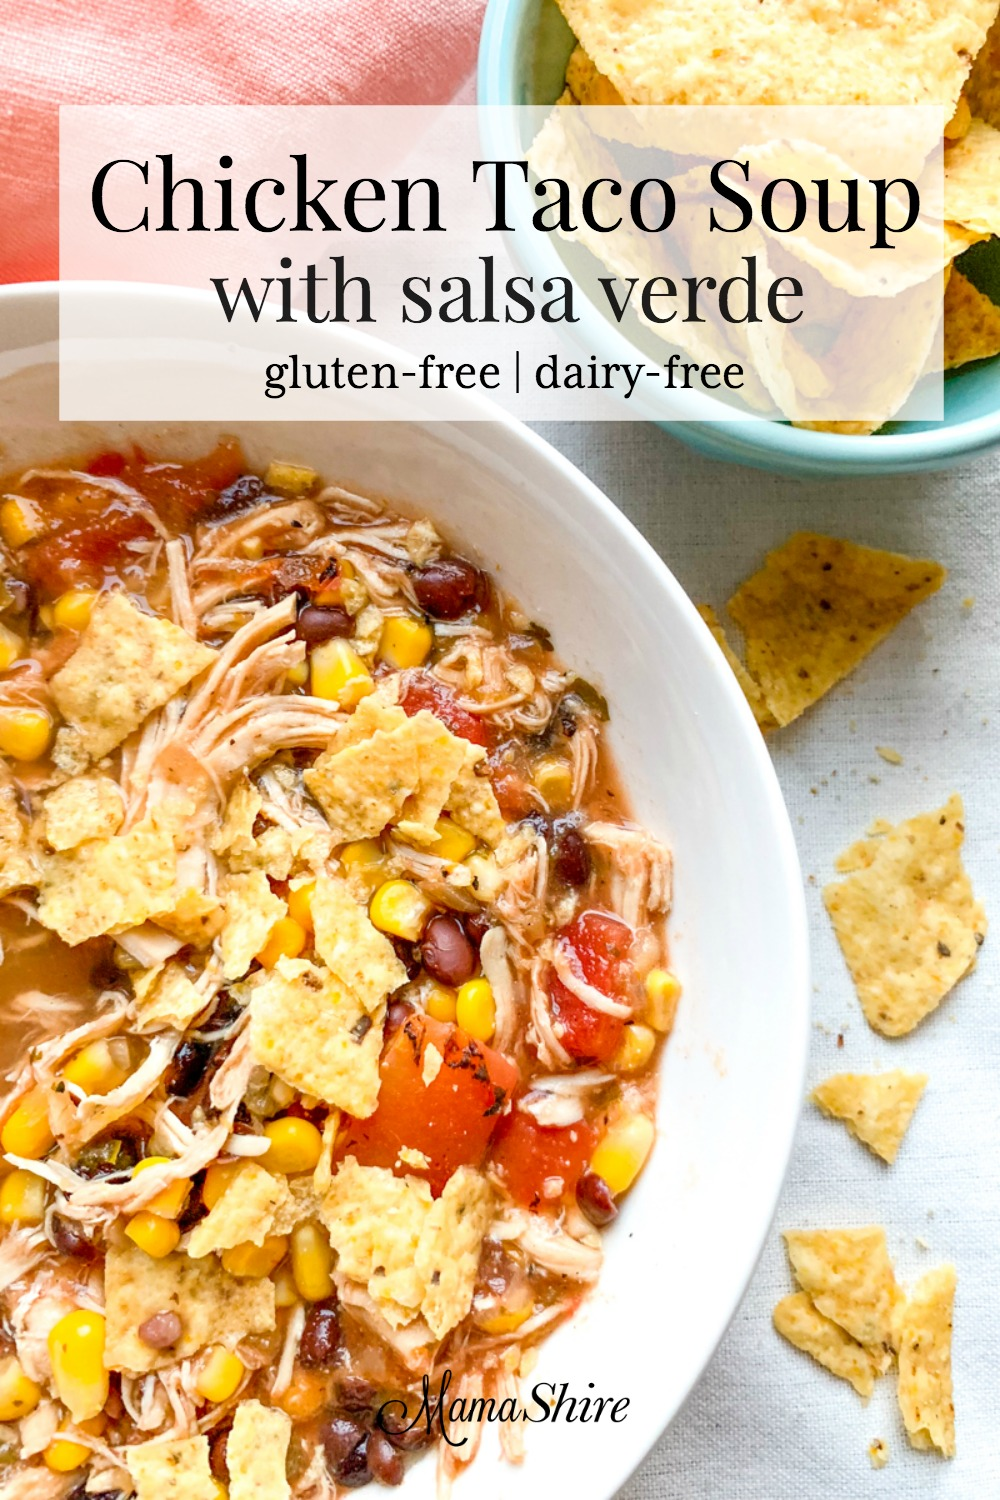 Tortilla chips with a bowl of Chicken Taco Soup made with salsa verde.